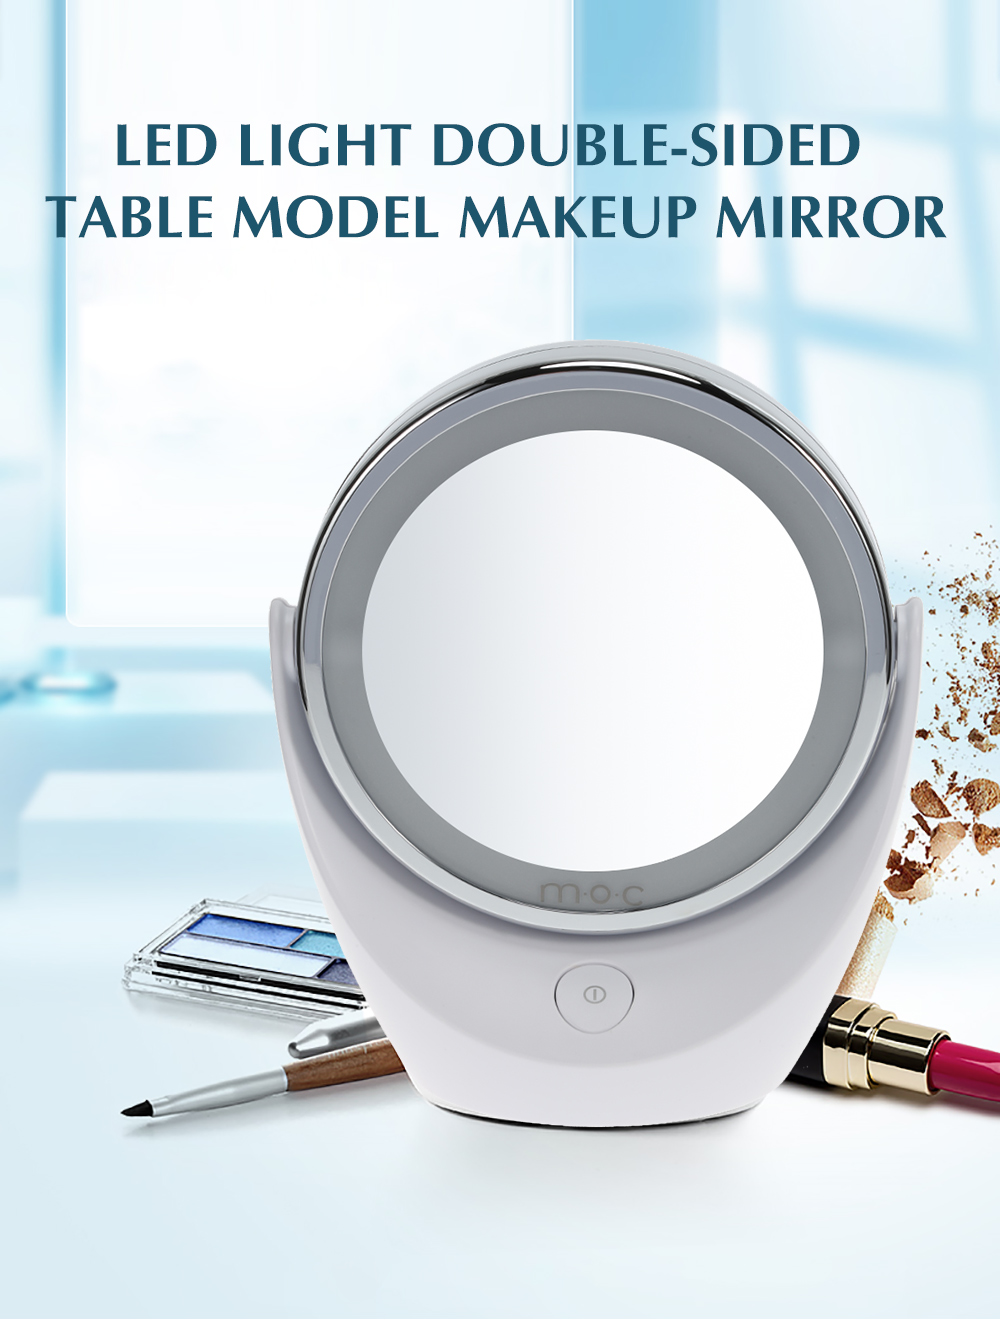 LED Light Table Model Makeup Mirror